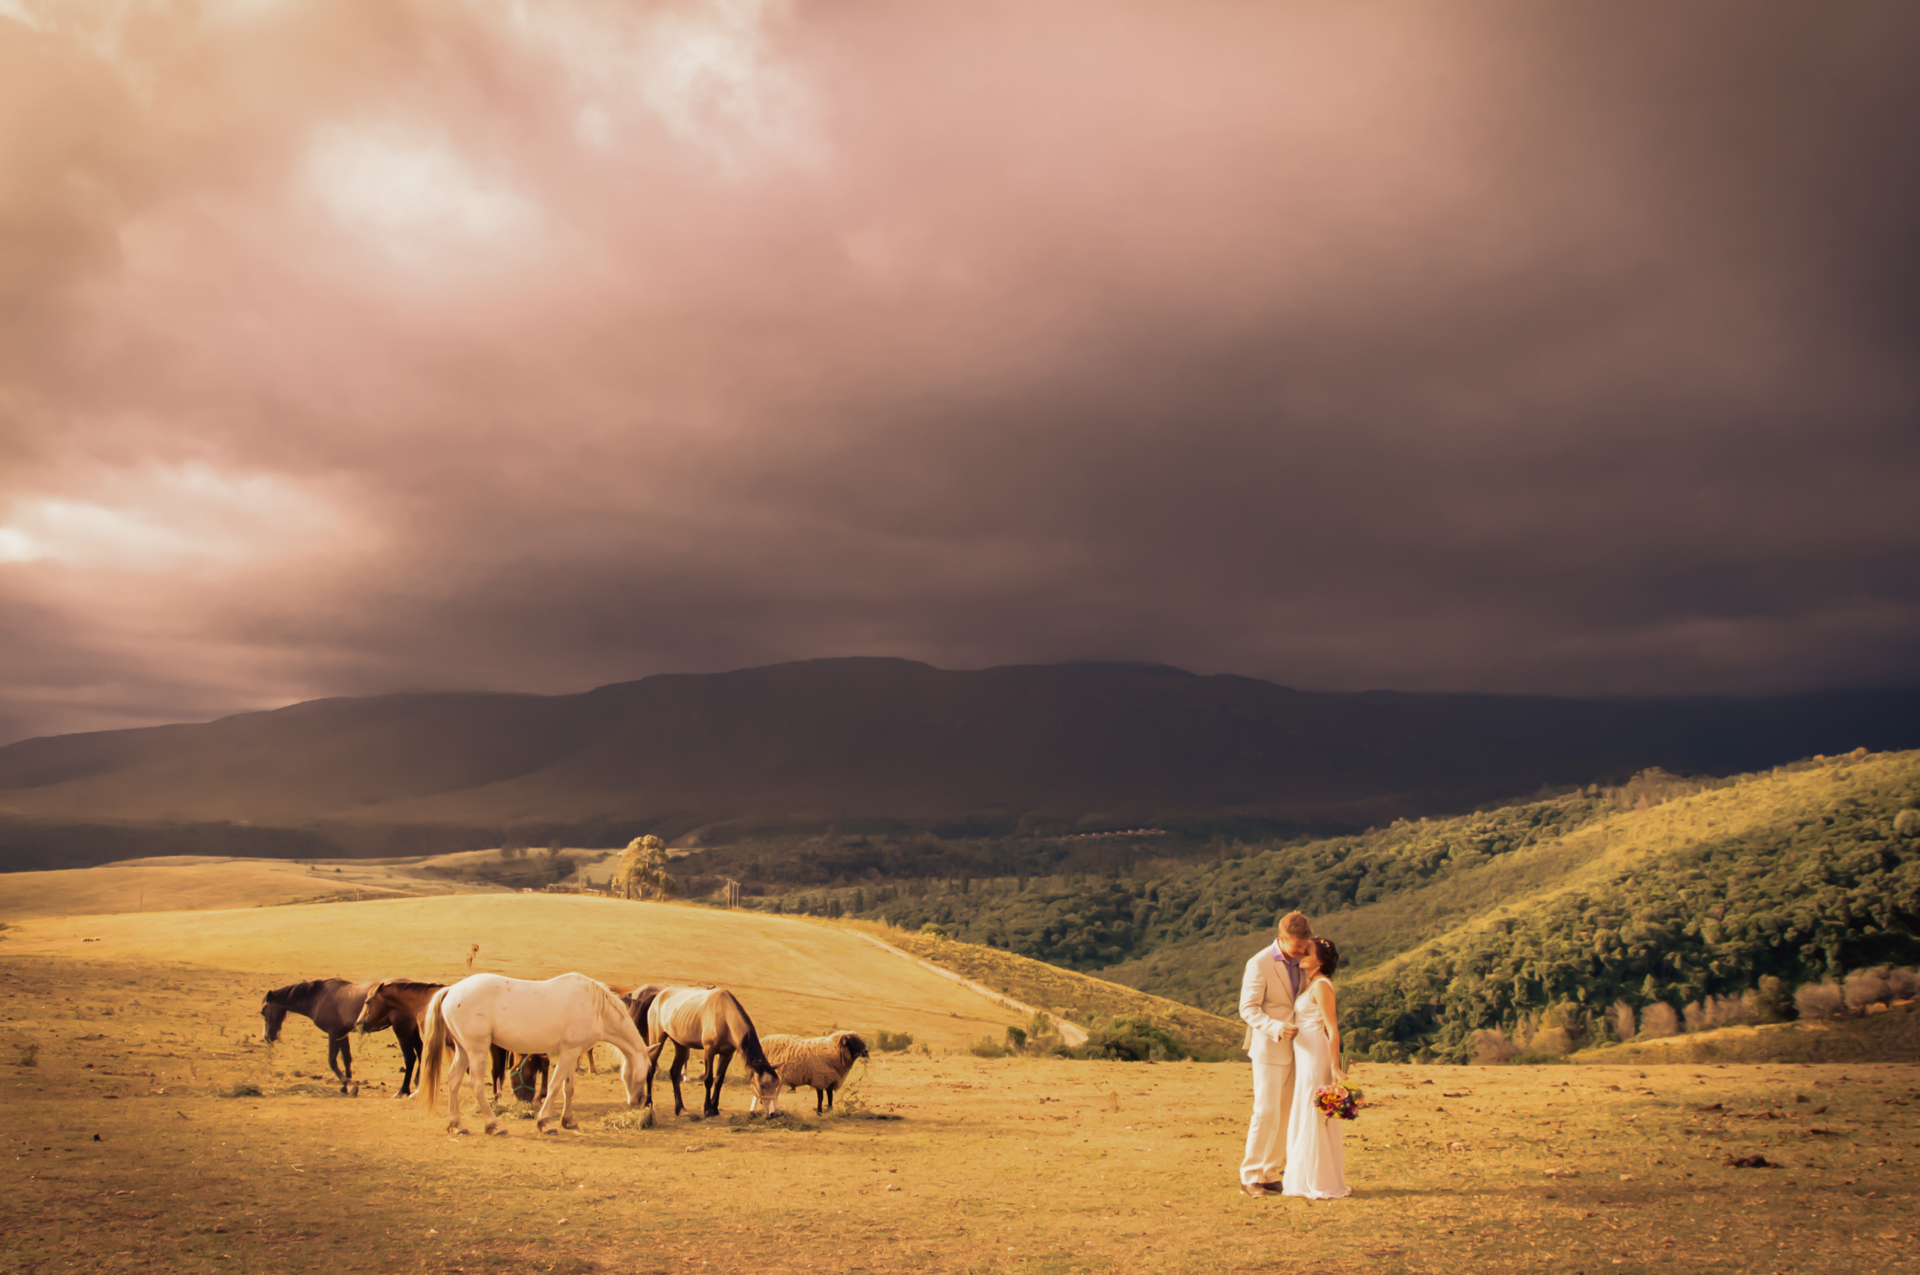 South Africa Outdoor Conservancy Elopement Photographer | A creative couple portrait of the newlyweds with the horses and sheep